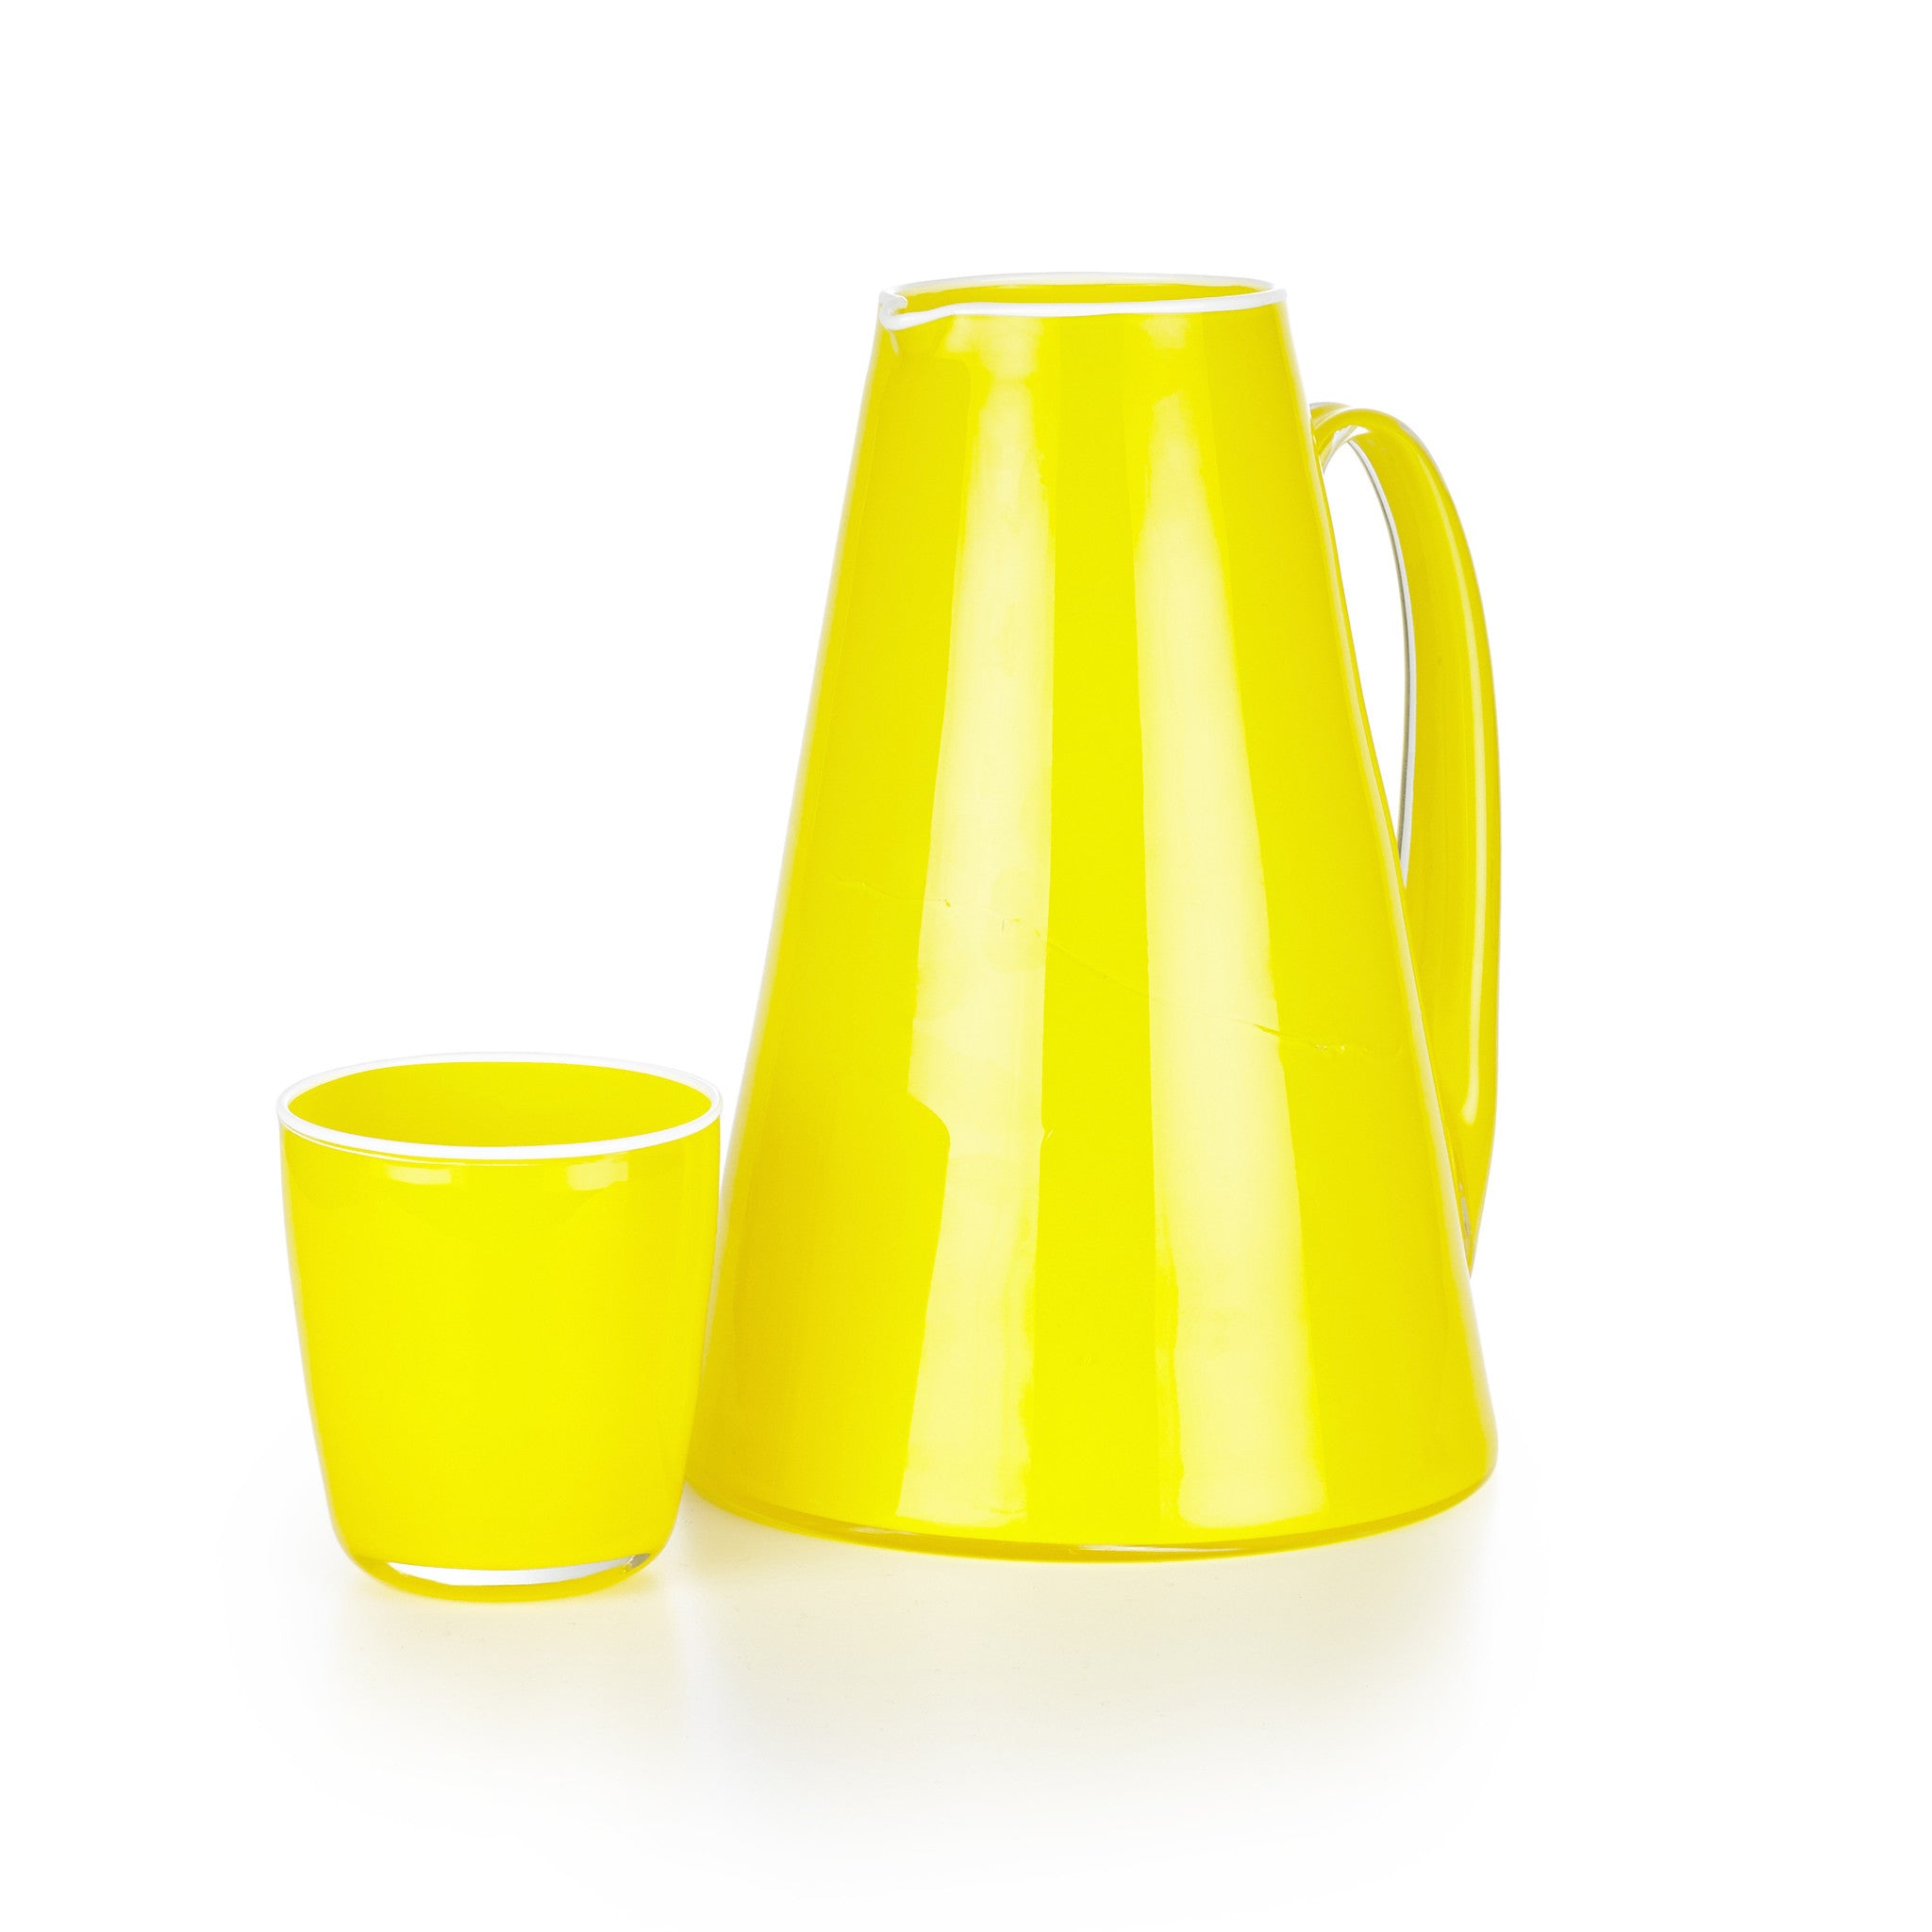 Handblown Glass Bumba Jug in Lemon Yellow